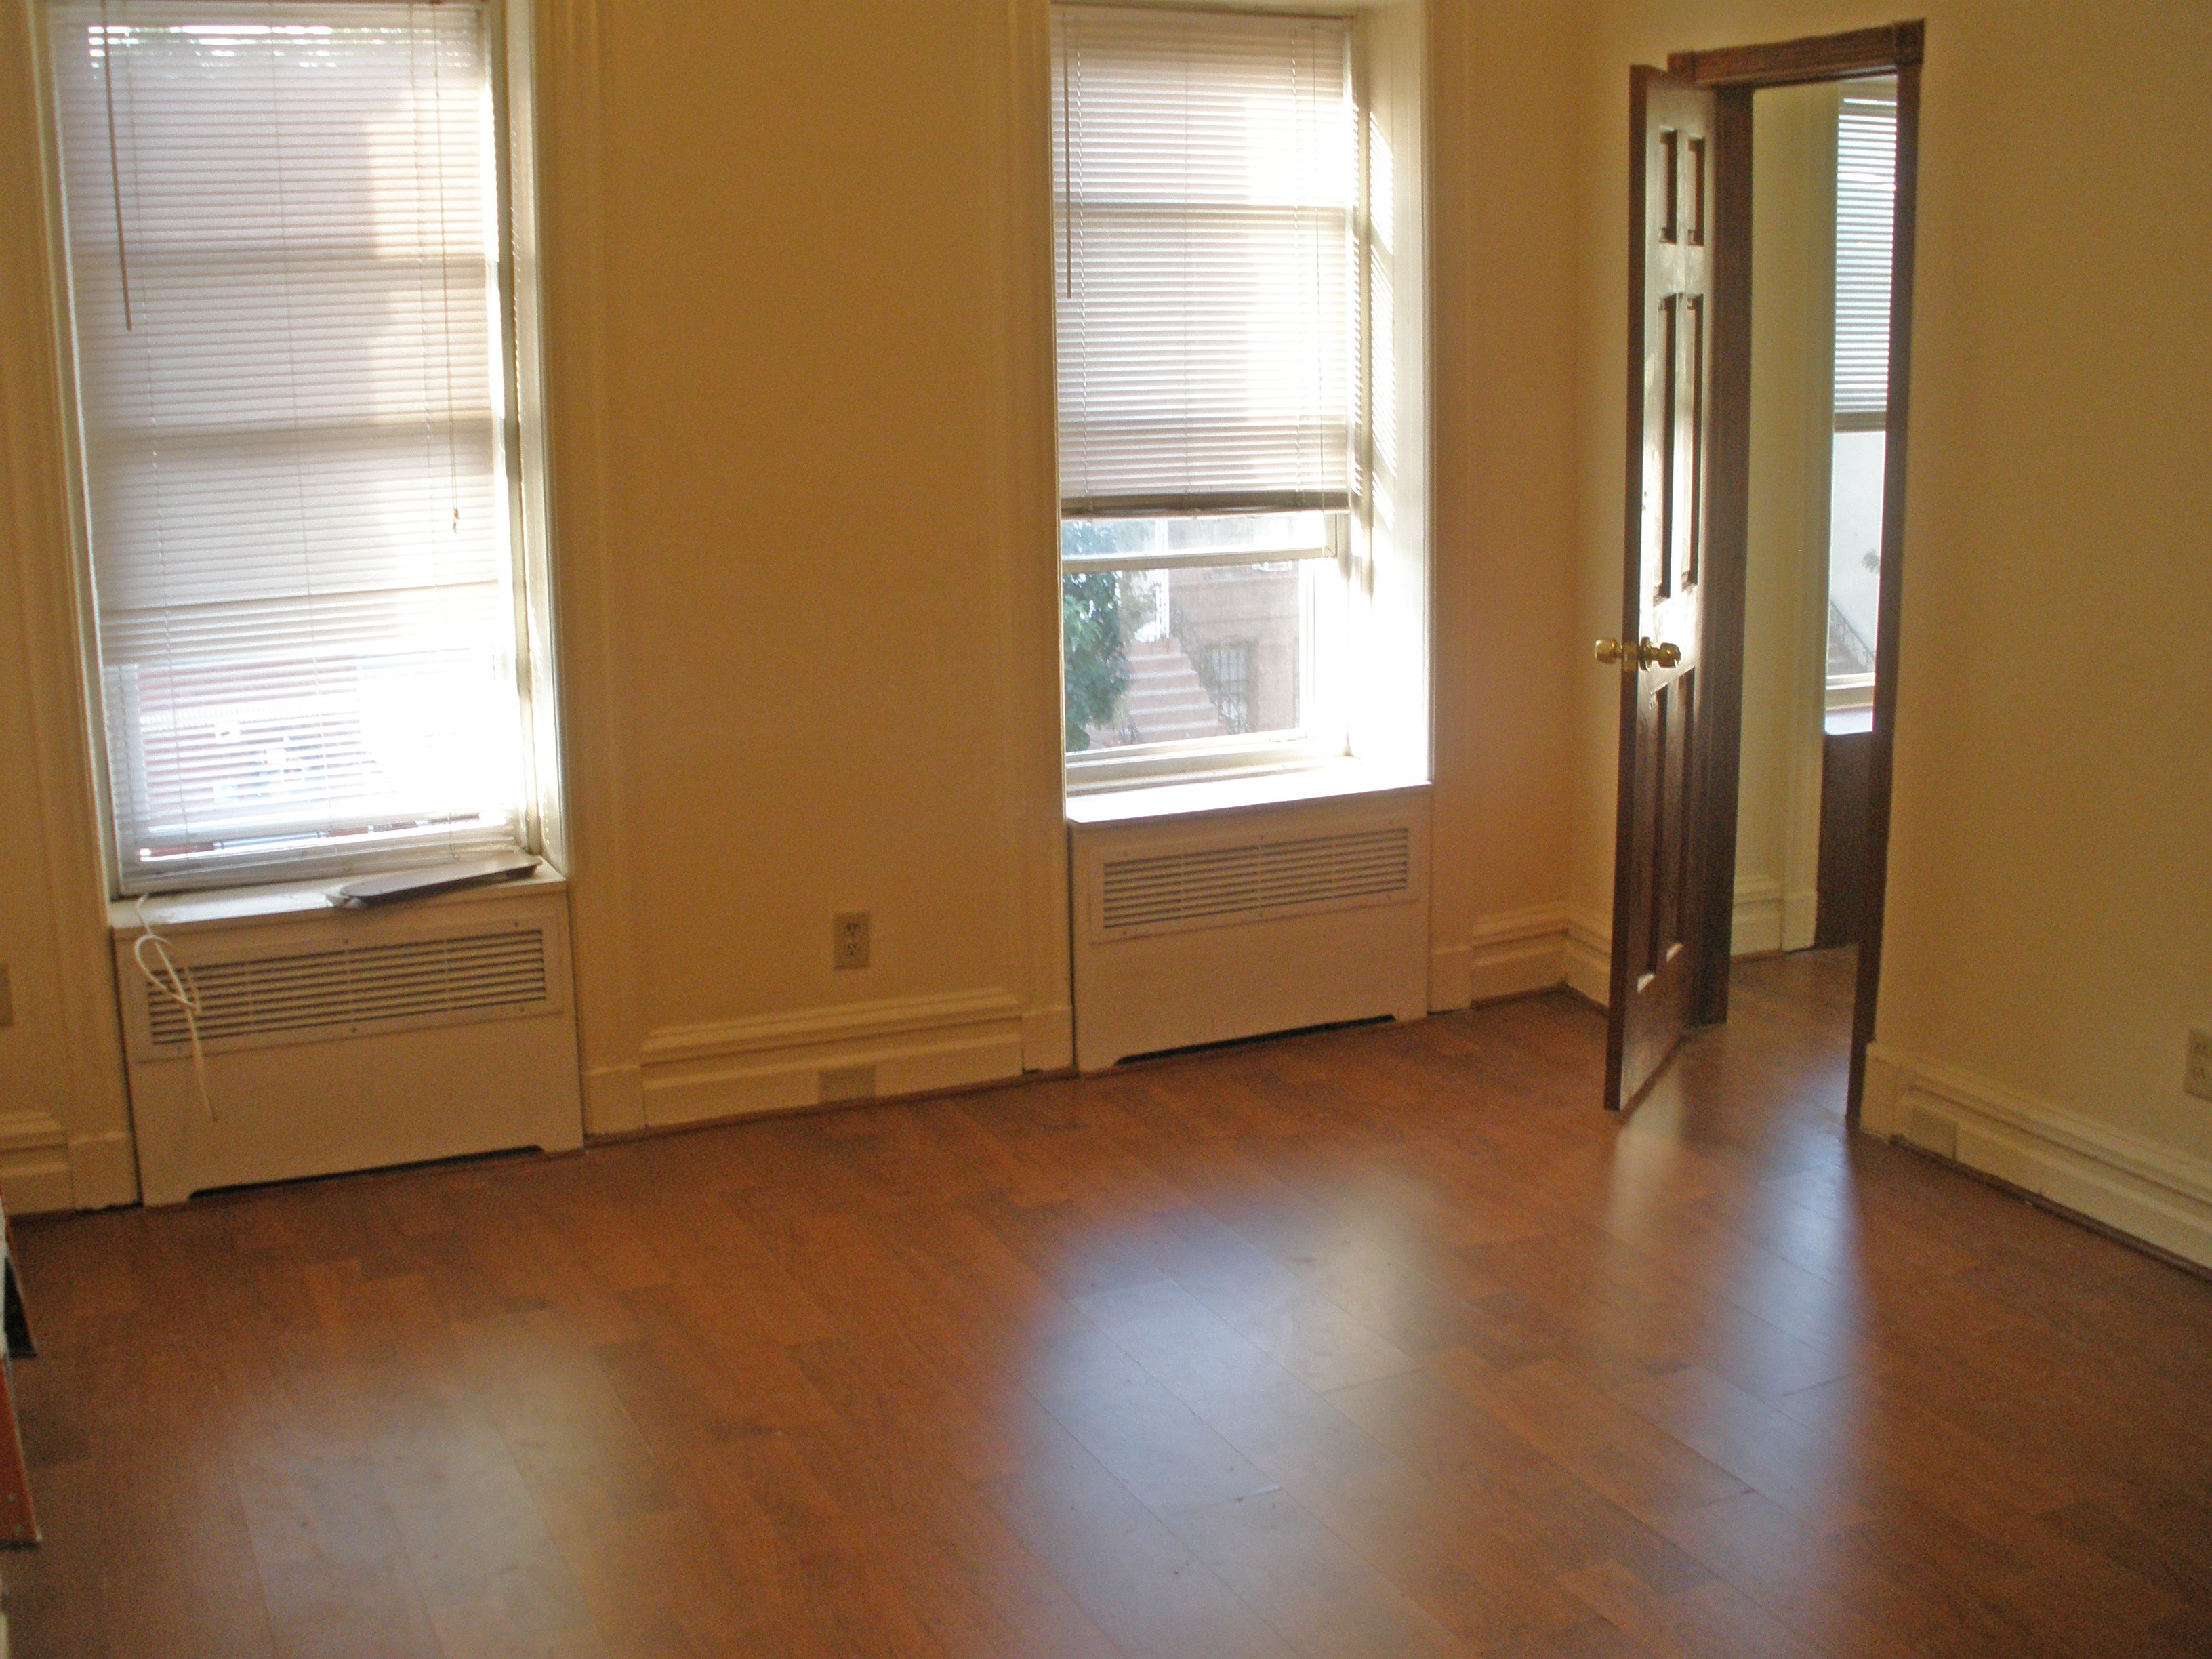 Bed stuy 2 bedroom apartment for rent brooklyn crg3117 for 2 bedroom apartments for rent